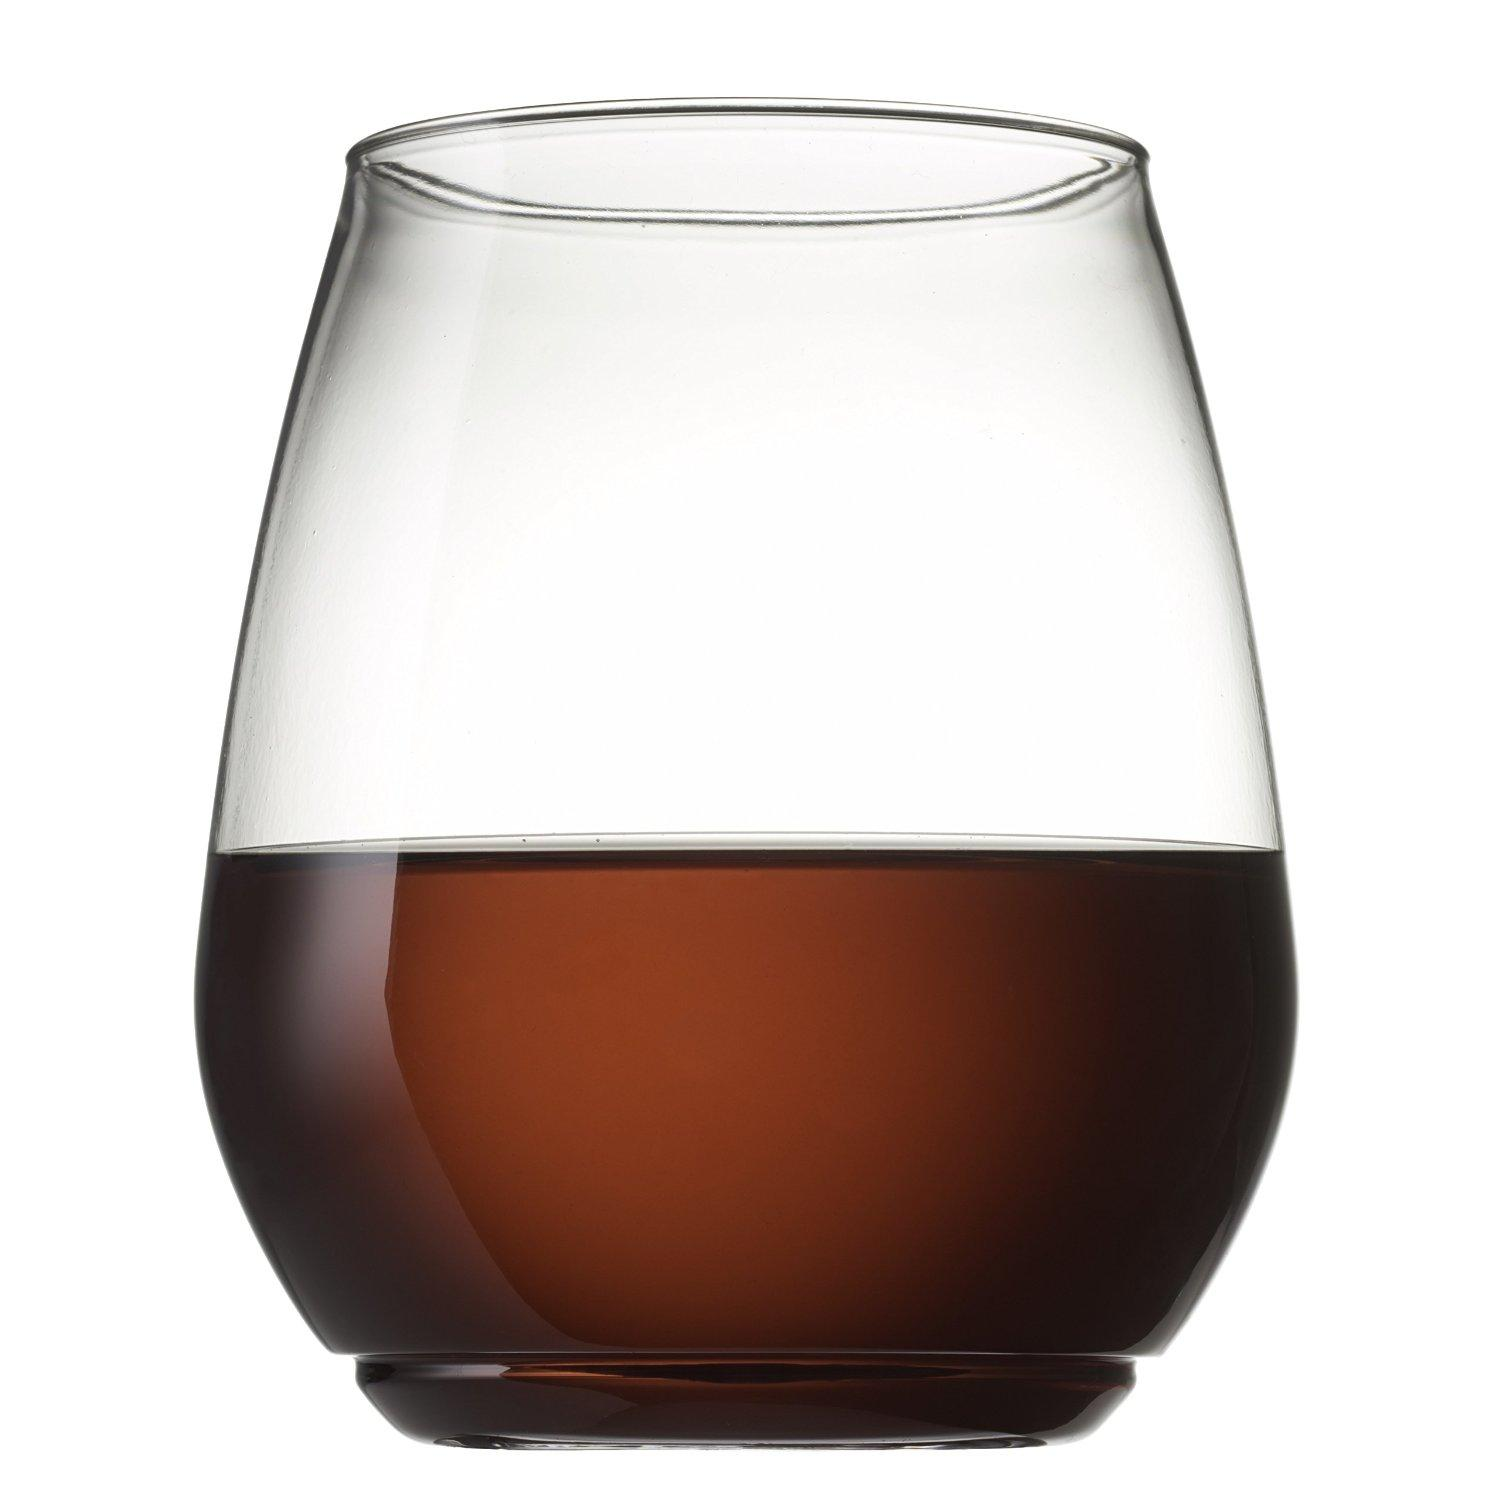 TOSSWARE 18oz Shatterproof Wine and Cocktail Glass - SET OF 12